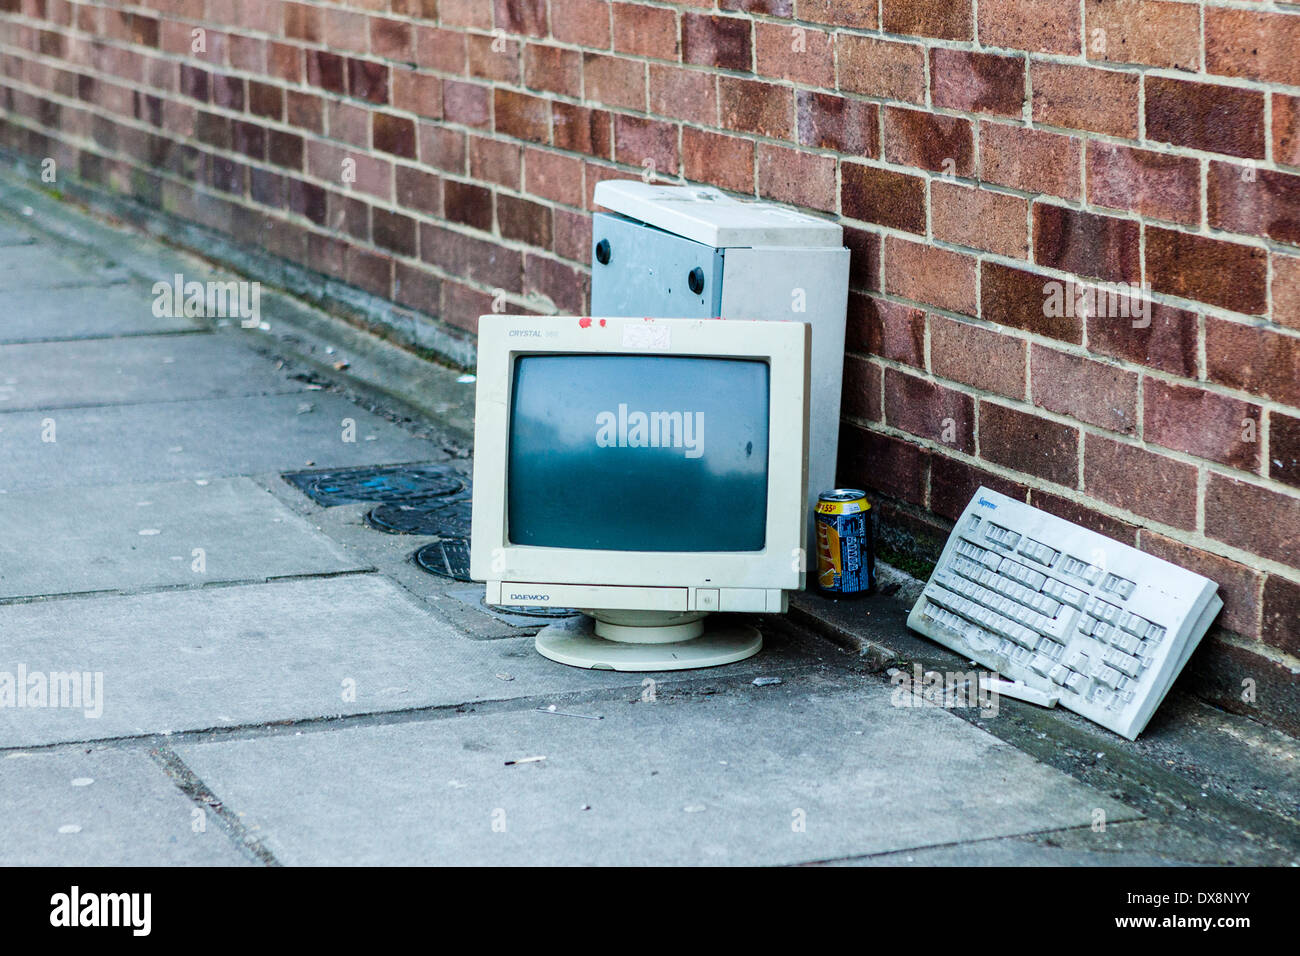 Old broken redundant Daewoo computer, screen and keyboard dumped on a pavement in London, UK - Stock Image